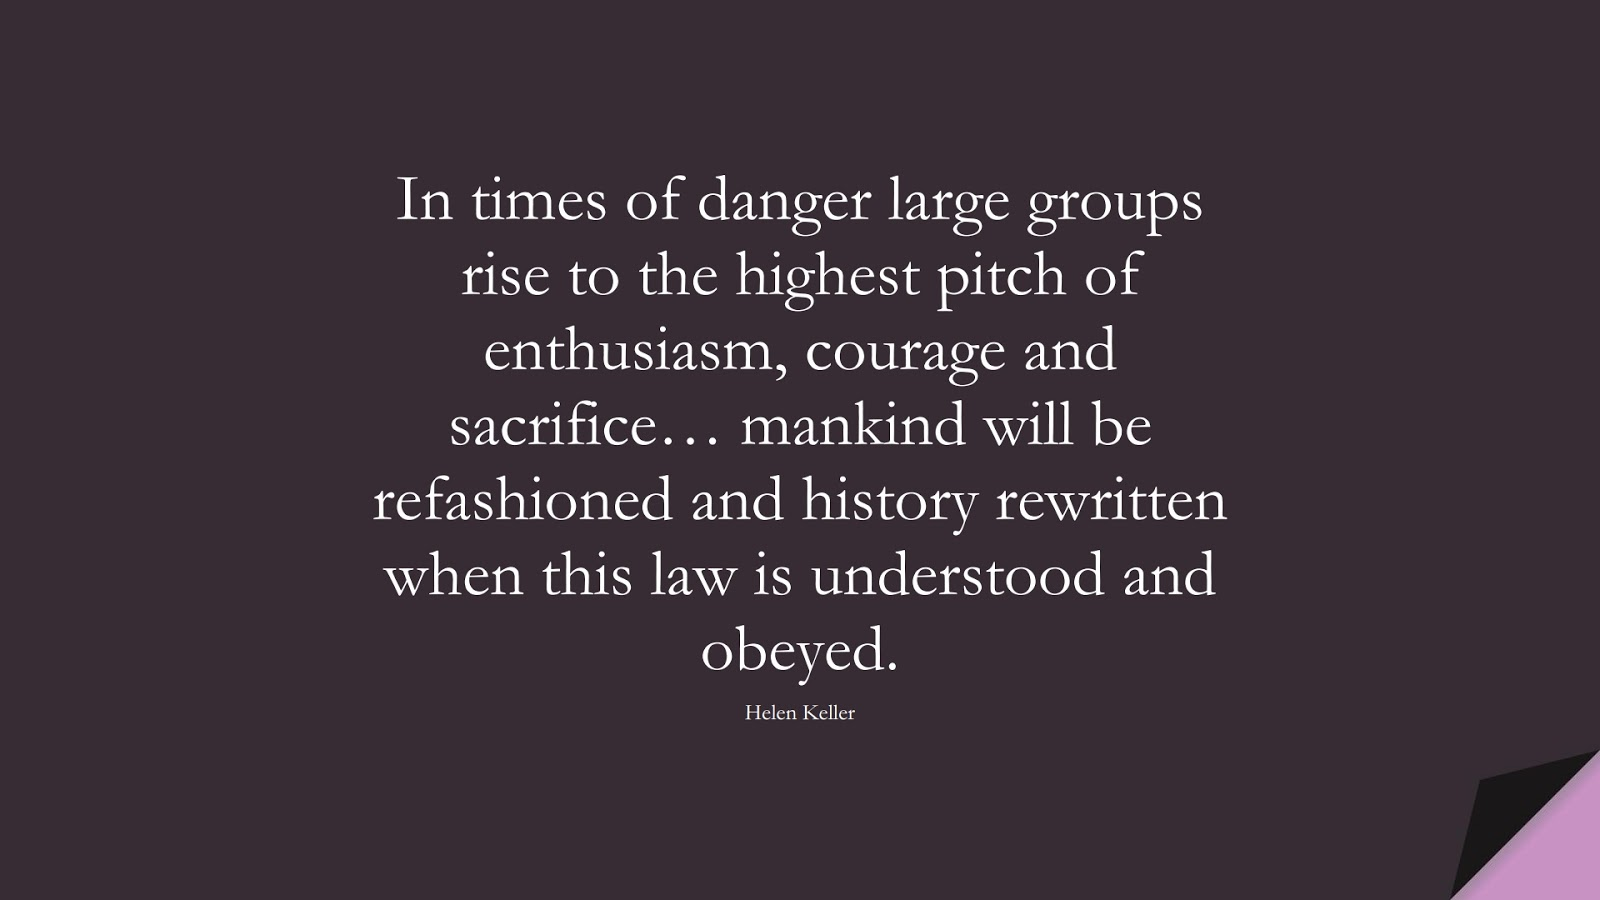 In times of danger large groups rise to the highest pitch of enthusiasm, courage and sacrifice… mankind will be refashioned and history rewritten when this law is understood and obeyed. (Helen Keller);  #HumanityQuotes